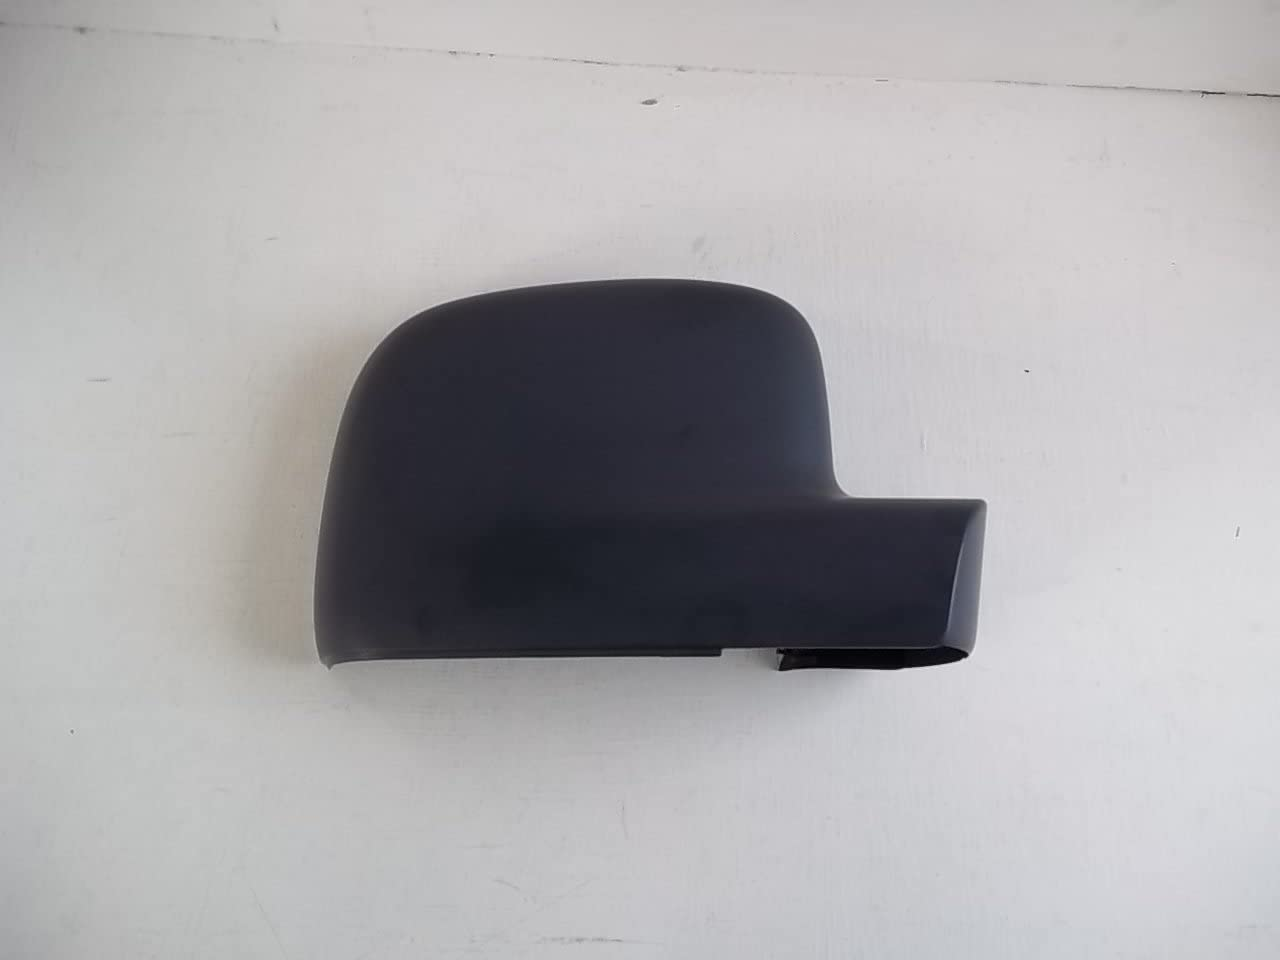 VOLKSWAGEN TRANSPORTER T5 2003 2009 Door Mirror Cover Right Offside Driver